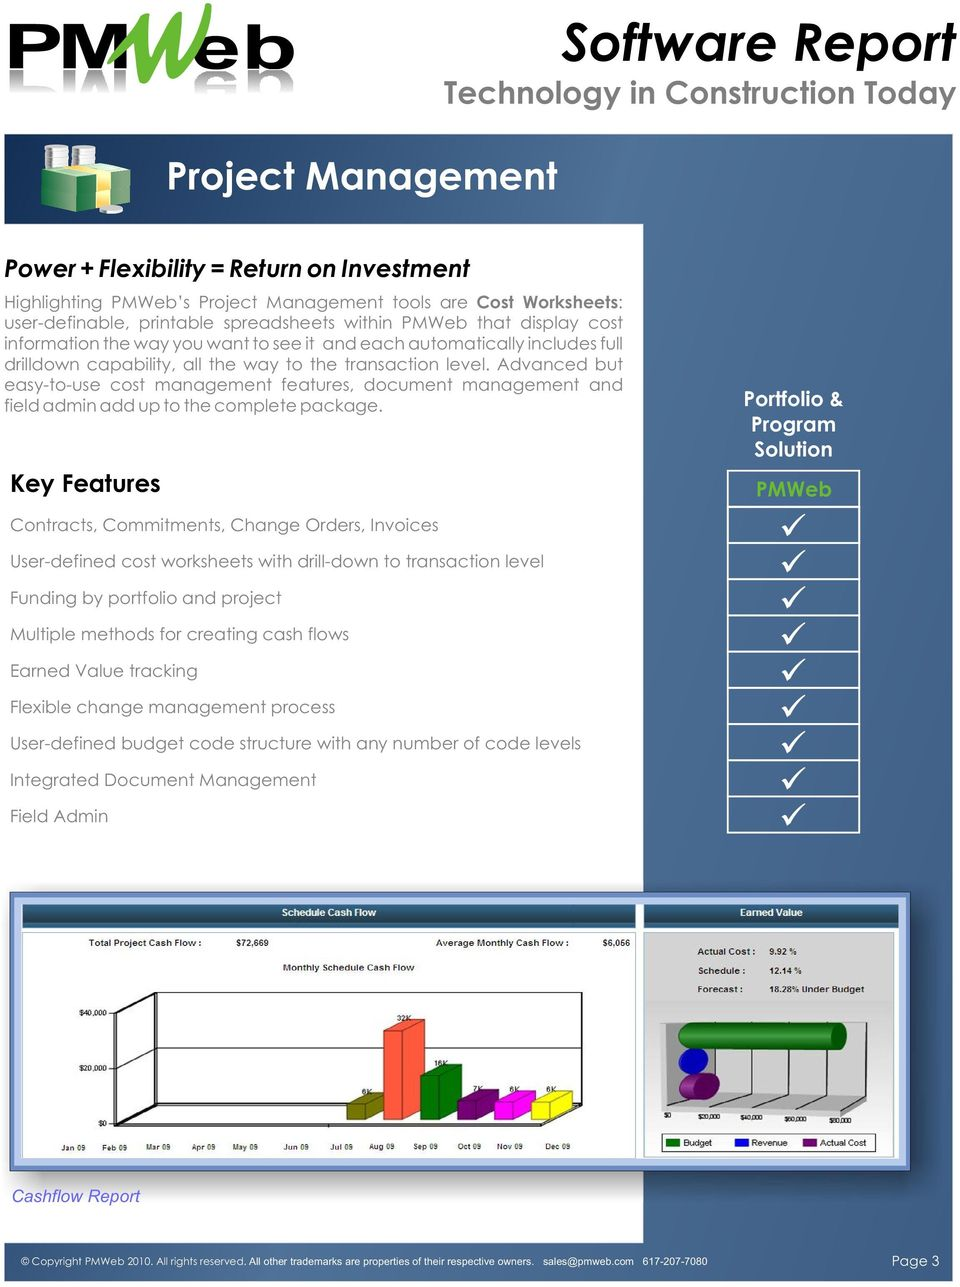 Advanced but easy-to-use cost management features, document management and field admin add up to the complete package.